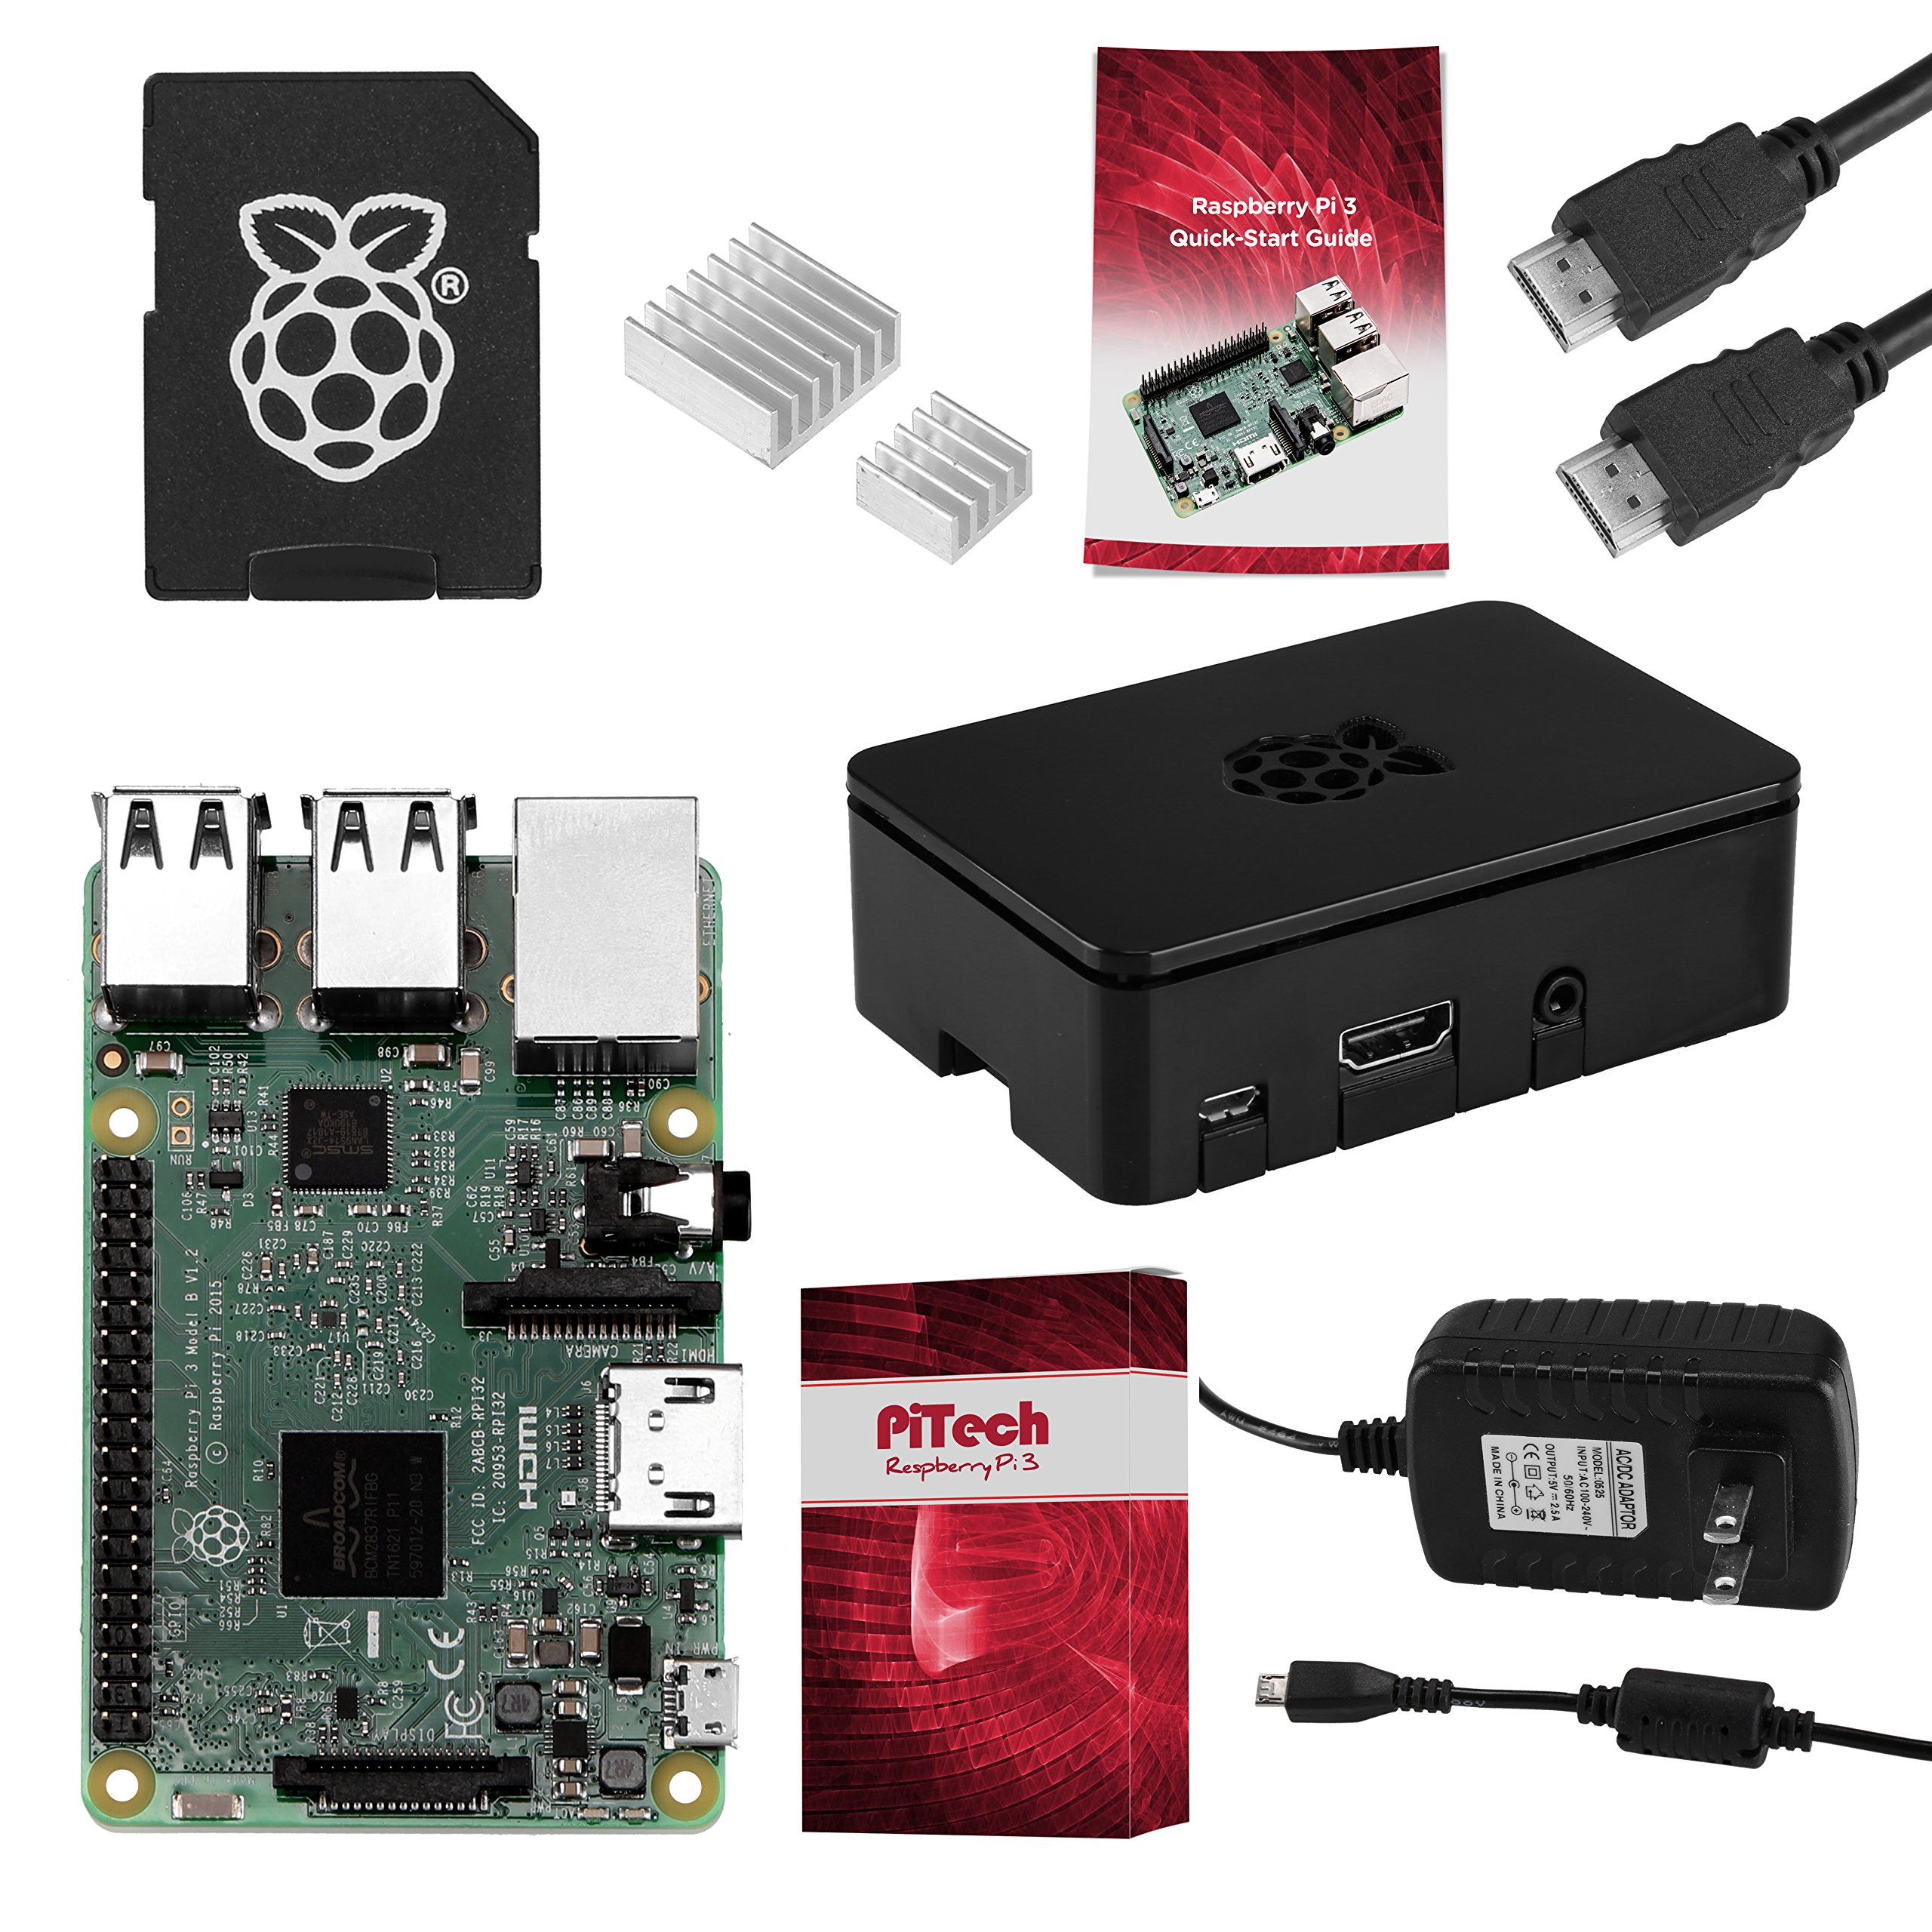 Raspberry Pi 3 COMPLETE Starter Kit, Black, 16GB Edition - Pi3 Model B Barebones Computer Motherboard 64bit Quad-Core CPU 1GB RAM, Black Pi3 Case, 2.5A Power Supply, 6FT HDMI Cable, 2 Heat Sink by NeeGo